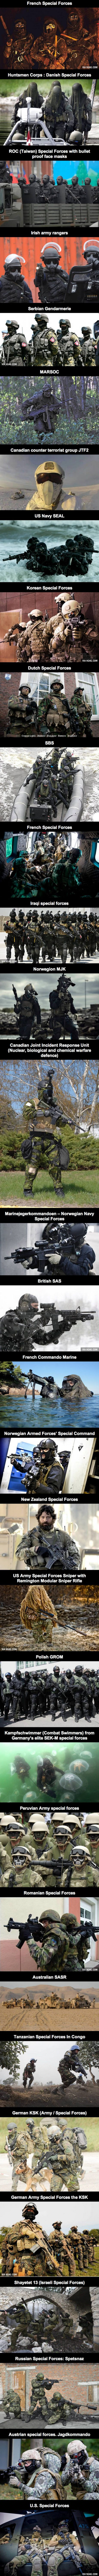 Special Forces of the World.